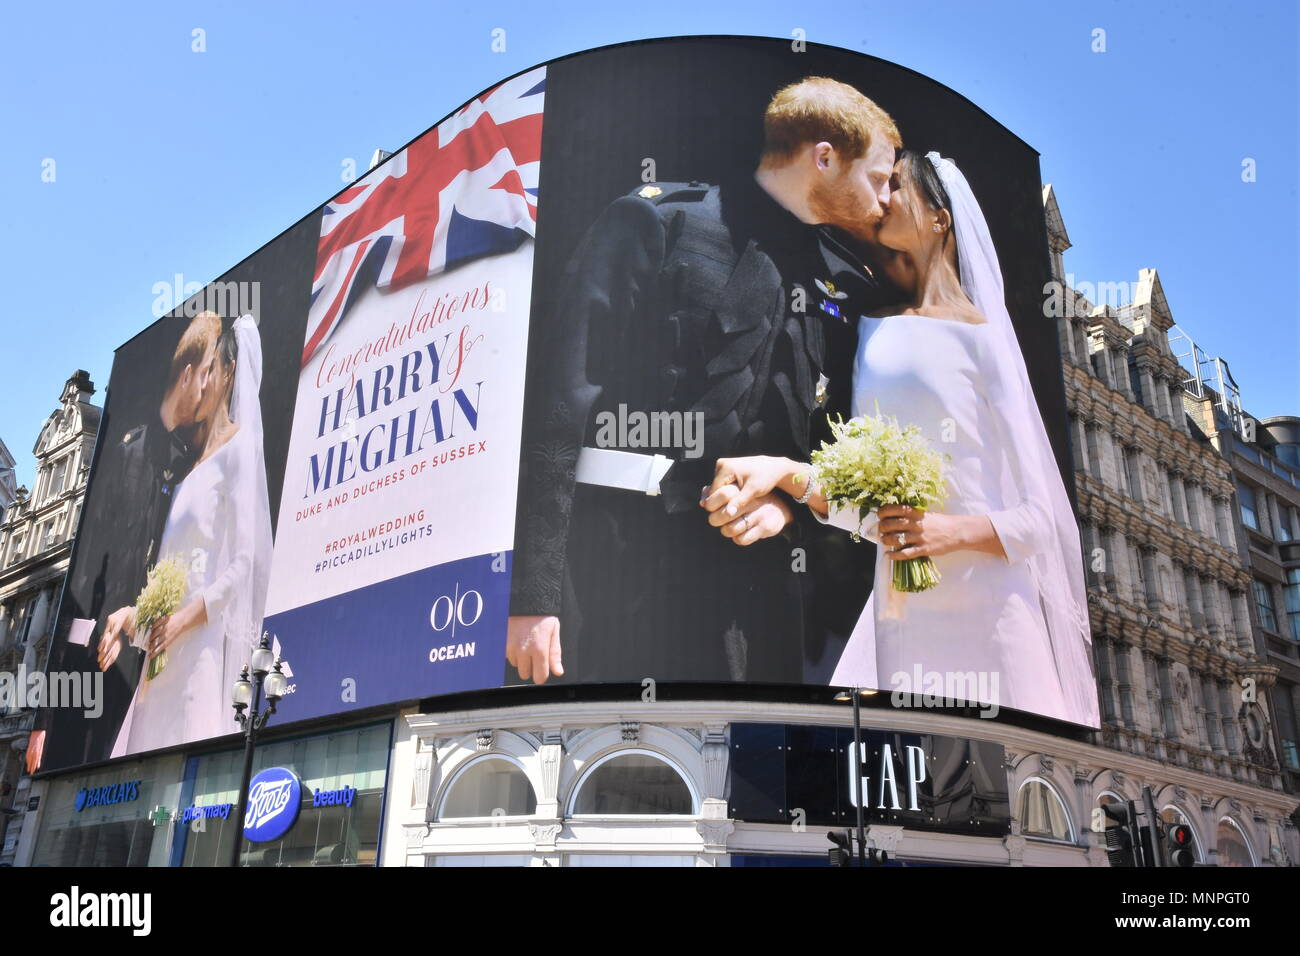 A picture of Prince Harry and Meghan Markle's Wedding in Windsor was displayed on the giant electronic billboard in Piccadilly Circus,London.UK Stock Photo